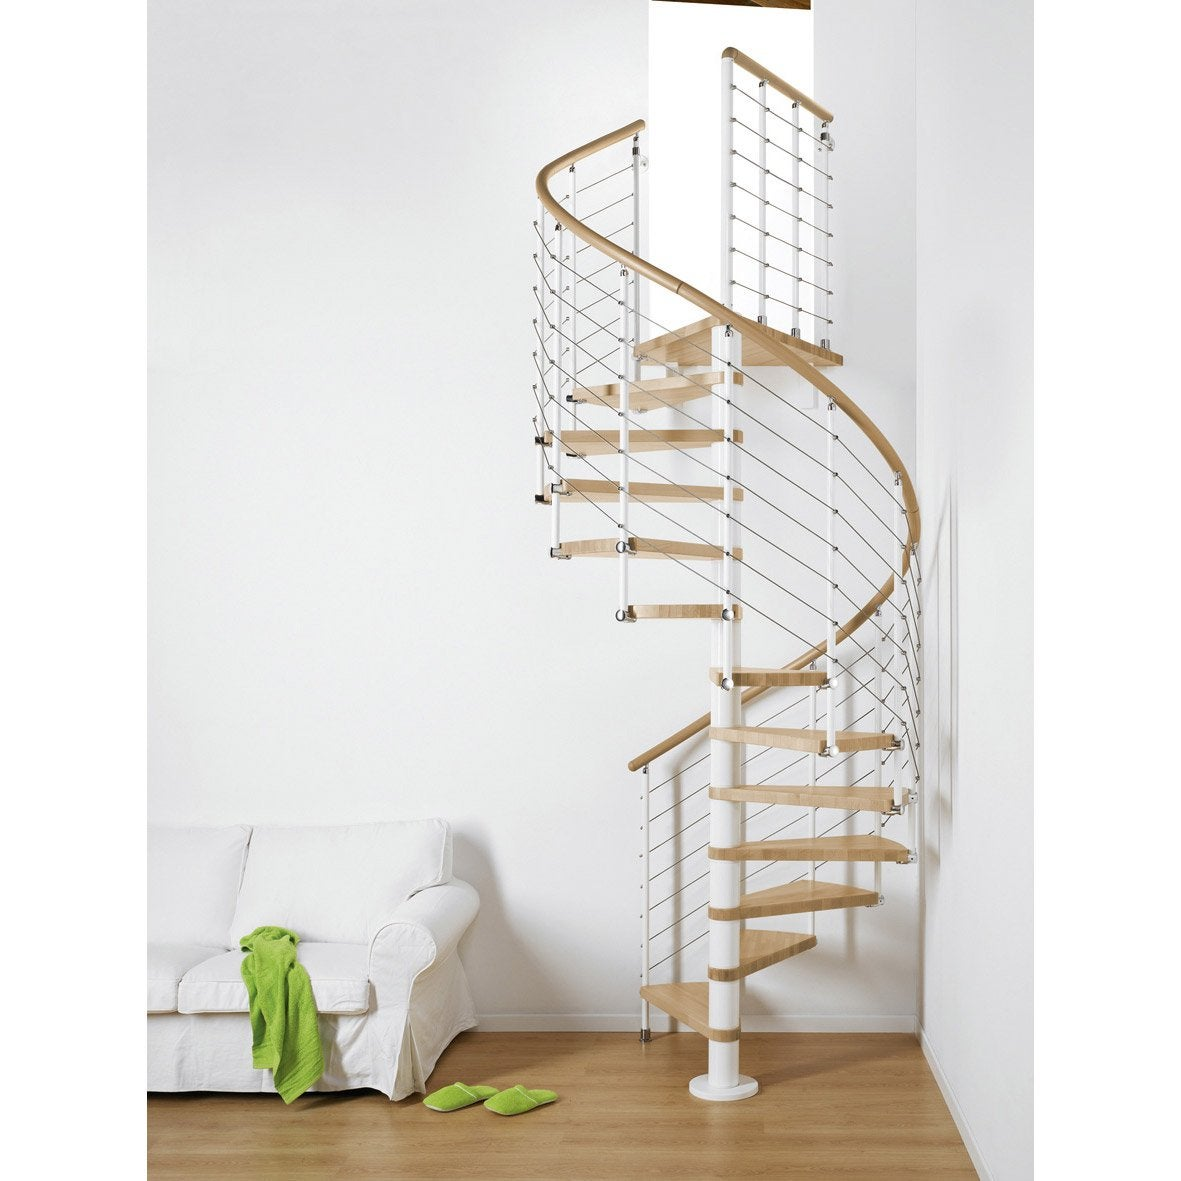 escalier colima 231 on rond ring structure m 233 tal marche bois leroy merlin